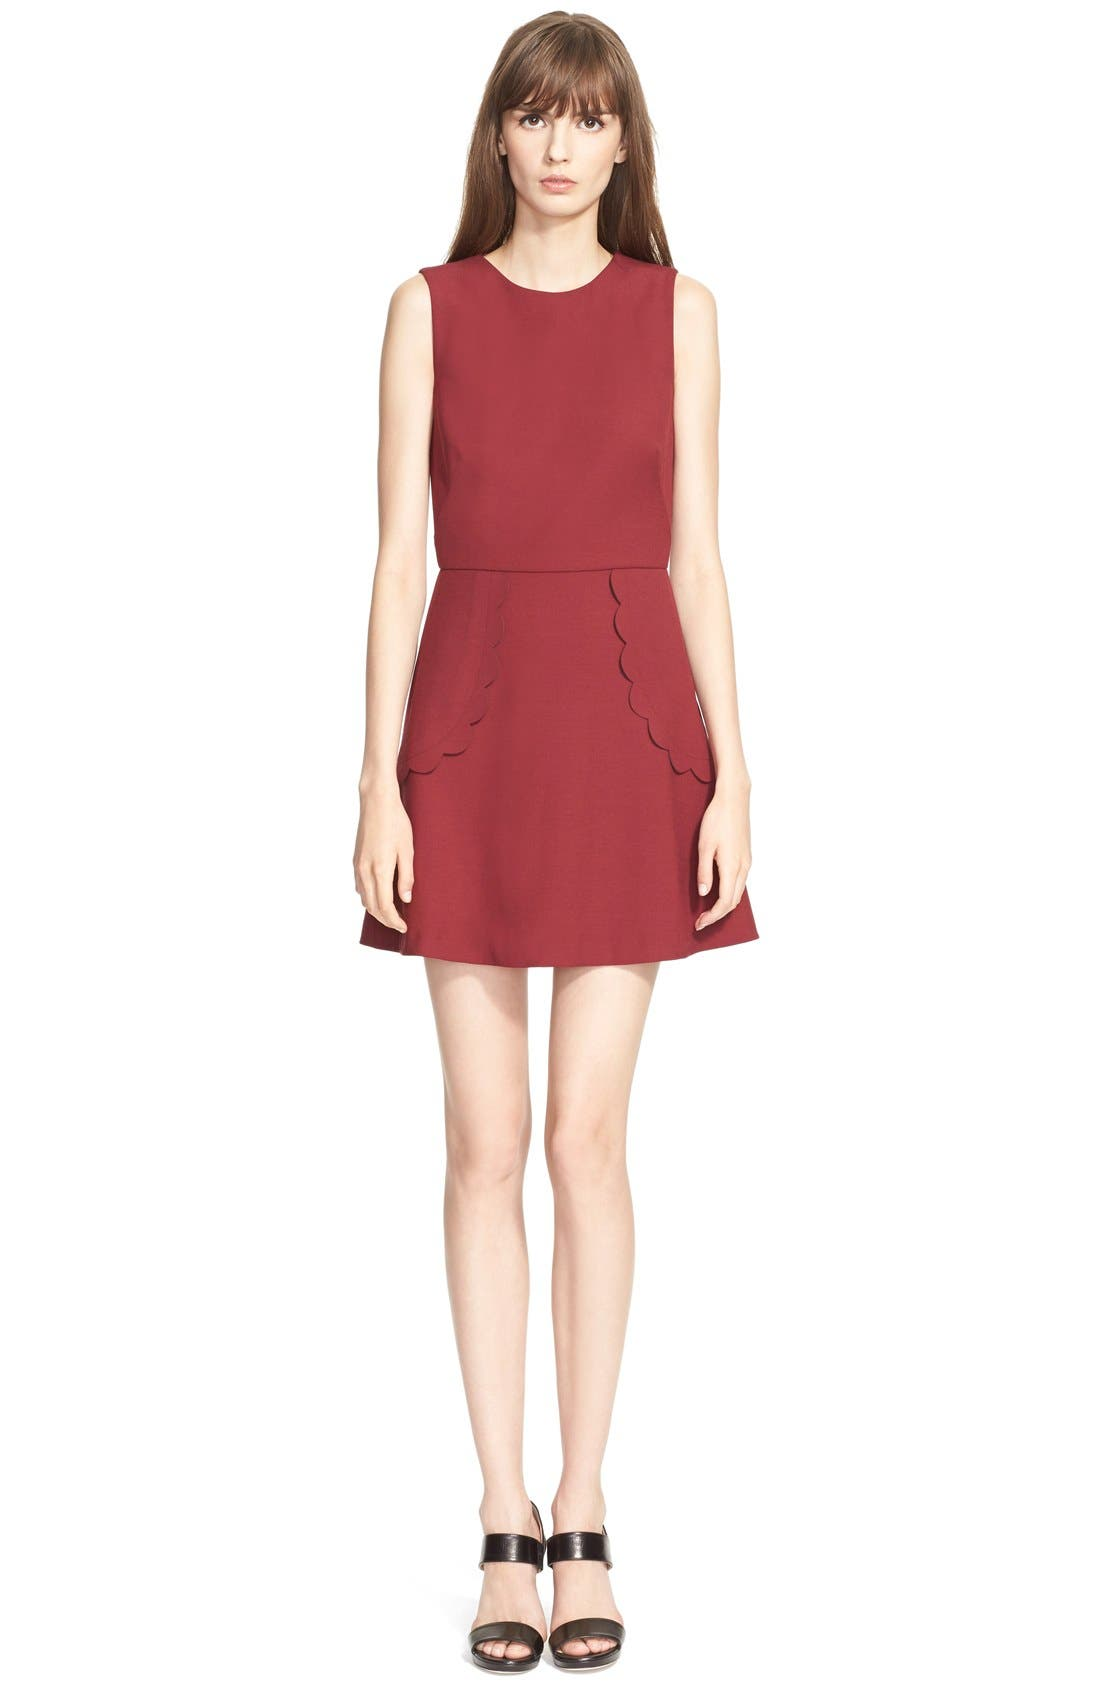 Alternate Image 1 Selected - RED Valentino Scallop Detail Cady Tech A-Line Dress